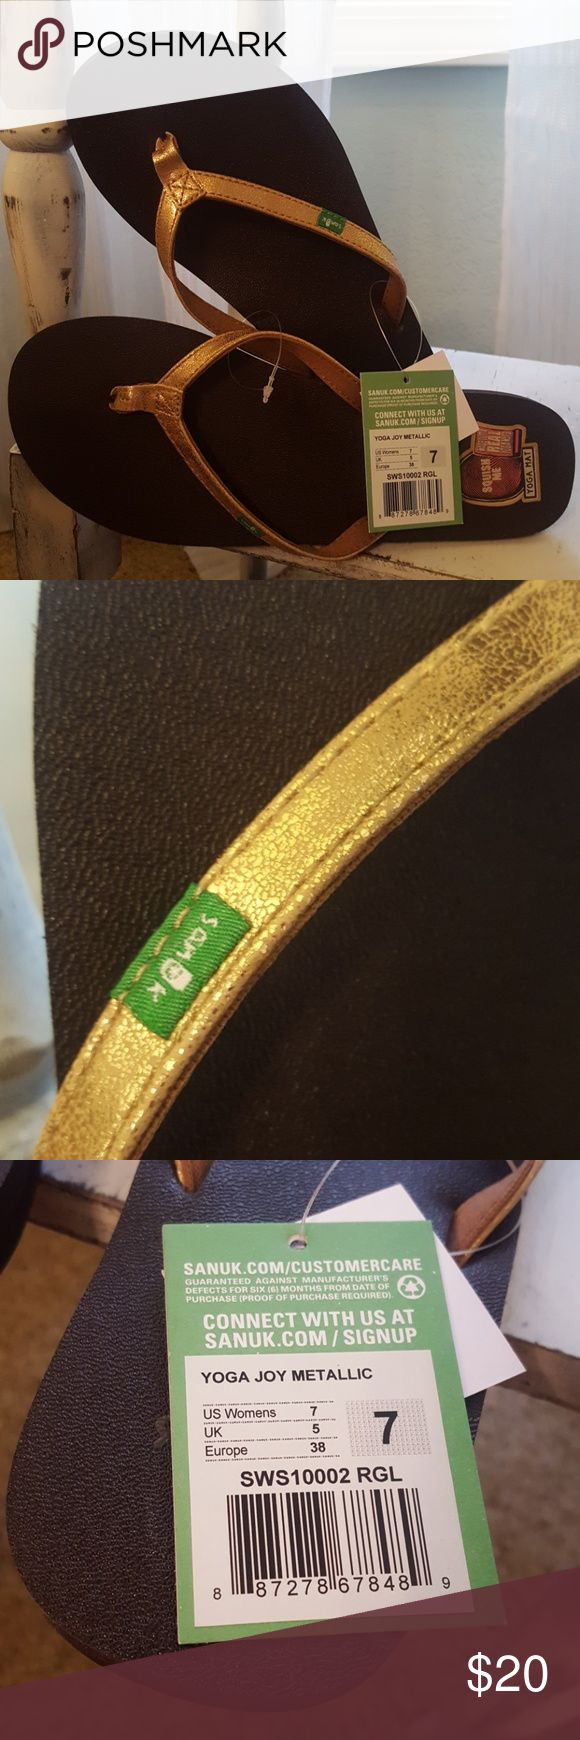 NWT Sanuk Flip Flops size 7 NWT Sanuk Flip Flops size 7. Gold metallic in color.  Made with real yoga mats.  Very comfy.  Non smoking home. Sanuk Shoes Sandals